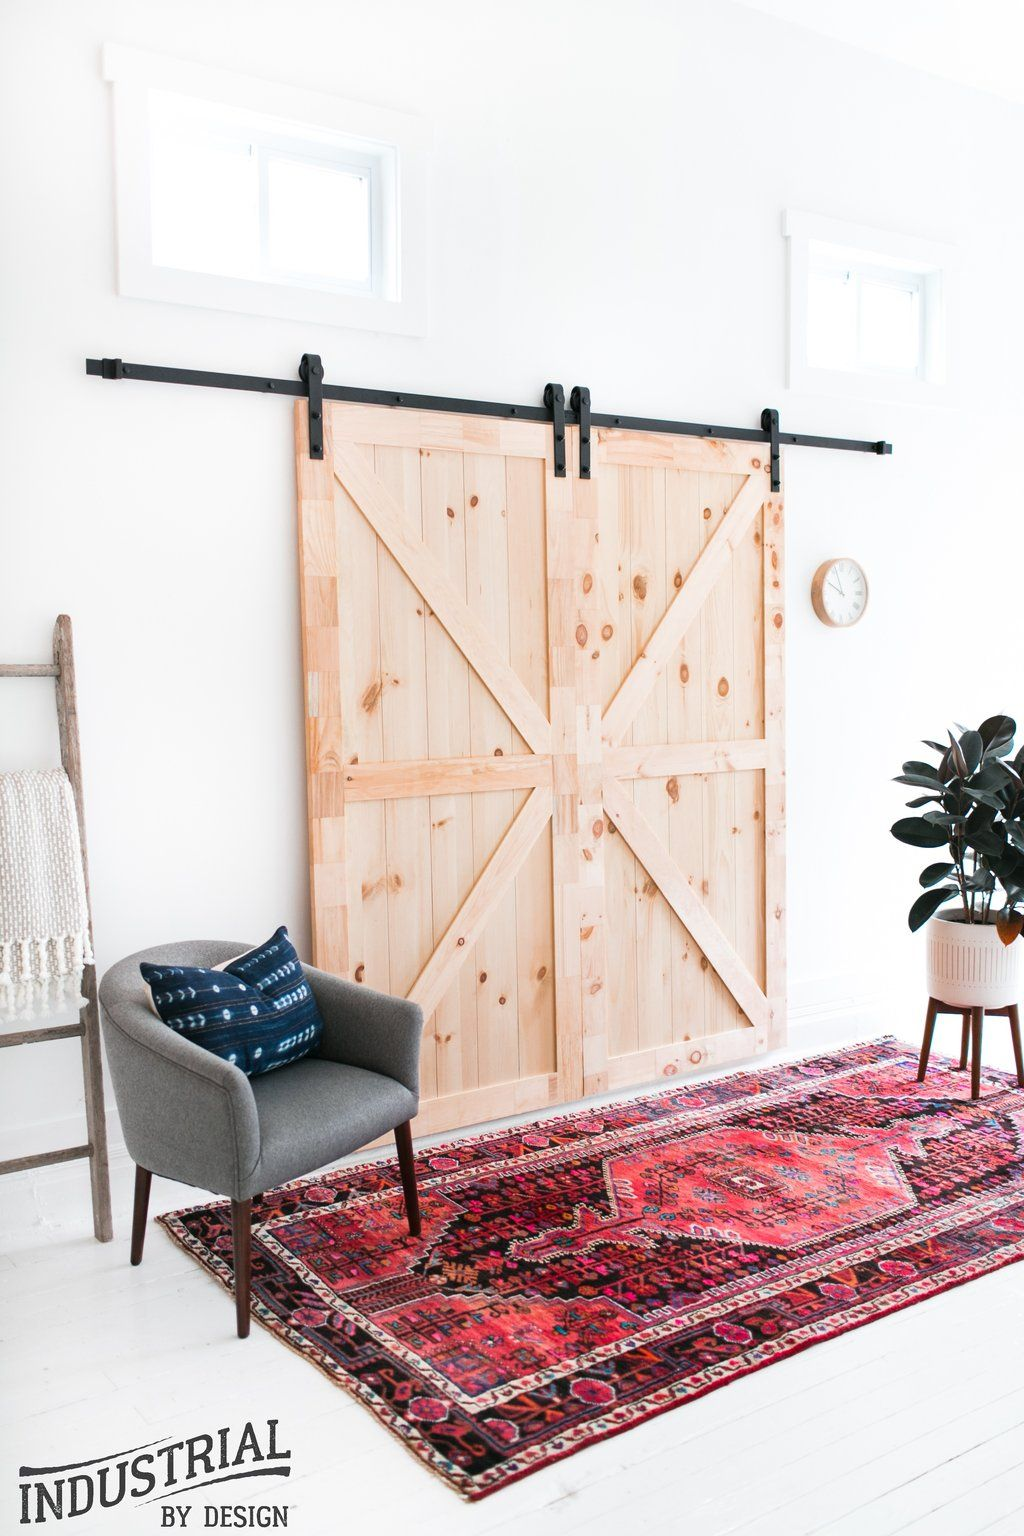 10 Foot Barn Door Hardware Kit Diy Barn Door Hardware Barn Door Hardware Diy Barn Door